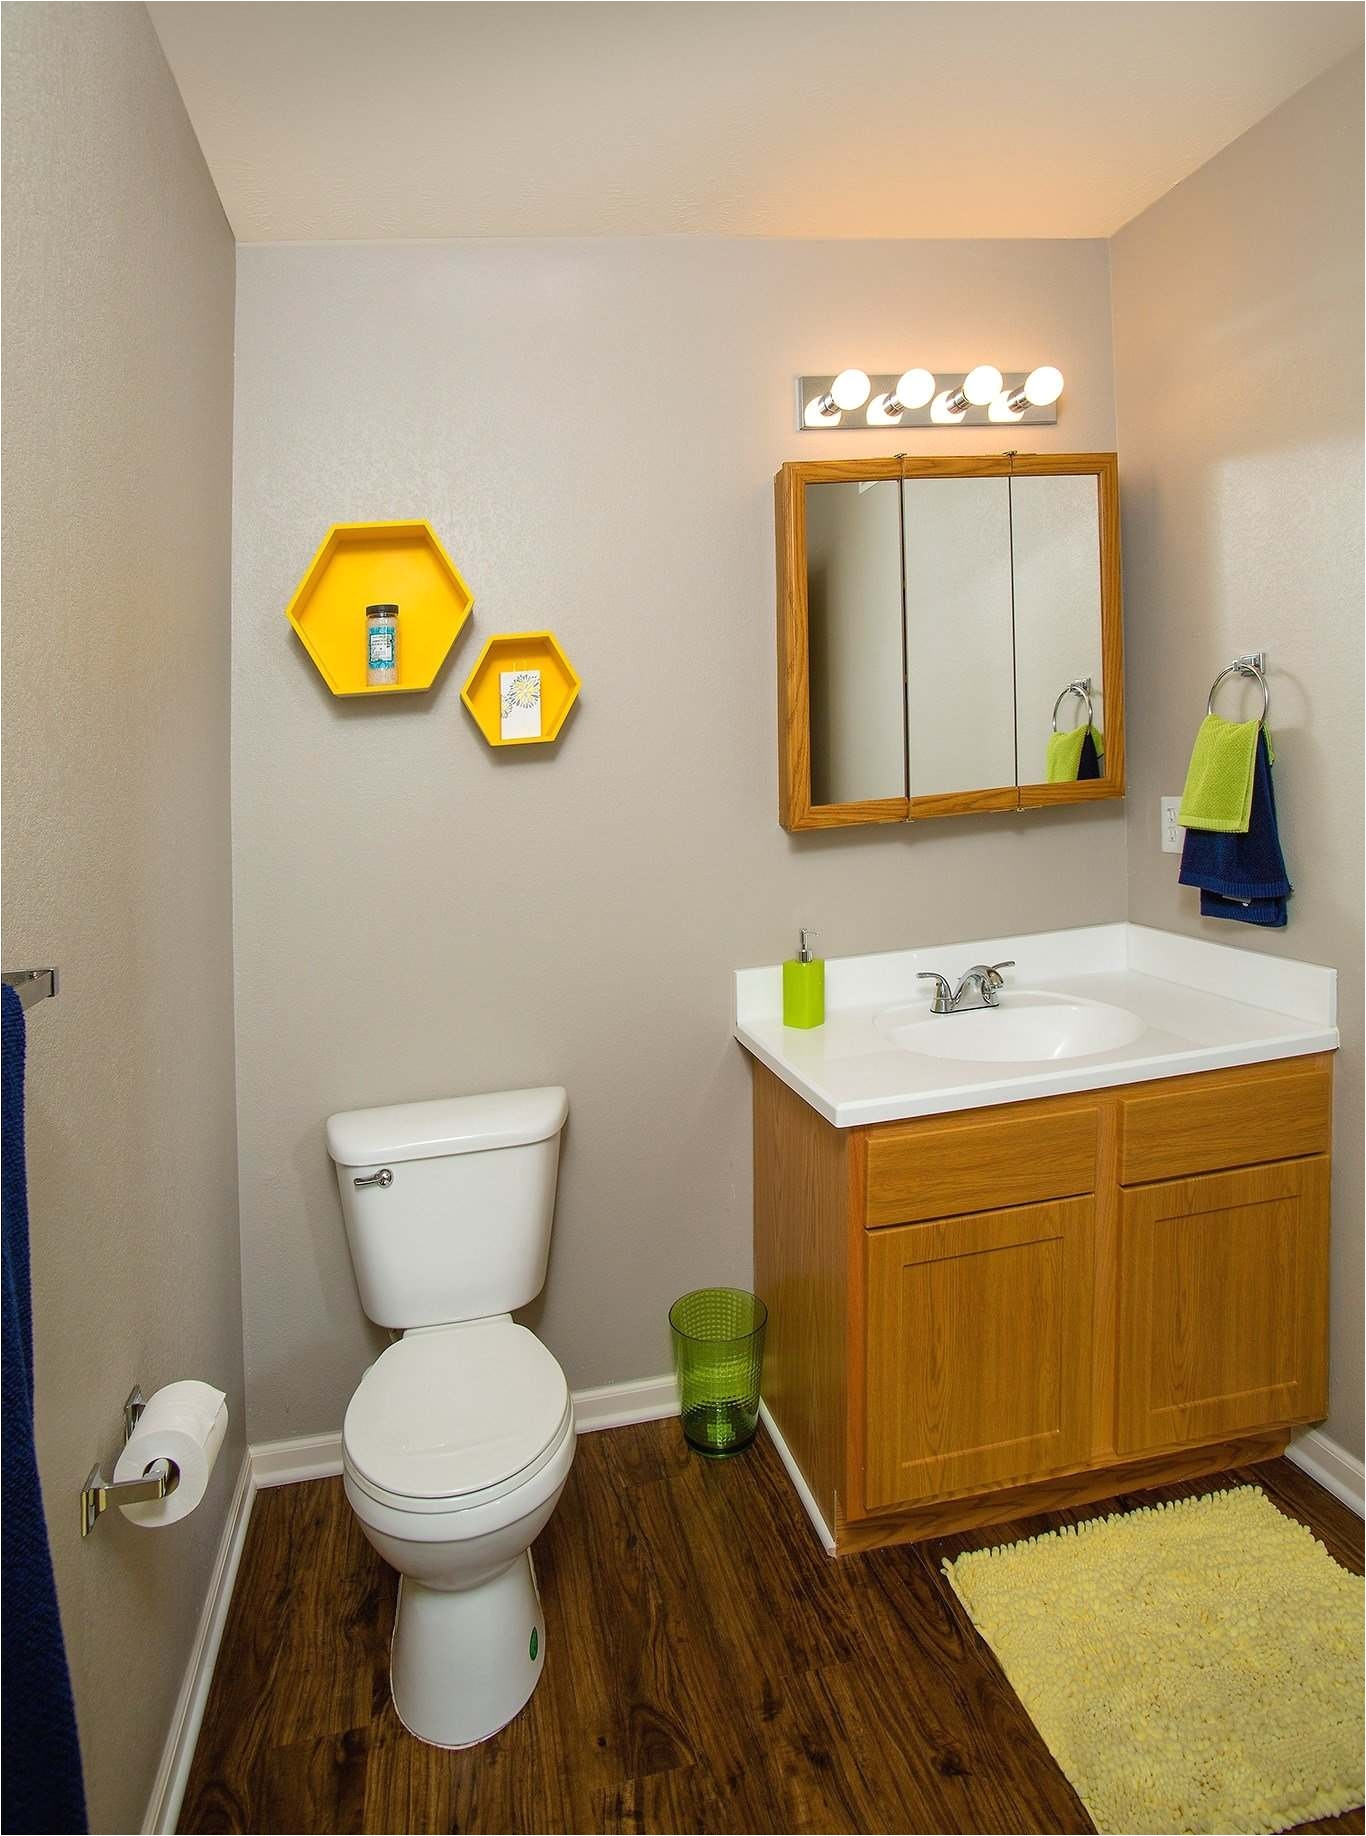 27 one bedroom apartments in grand rapids mi staggering apartments for rent in grand haven michigan